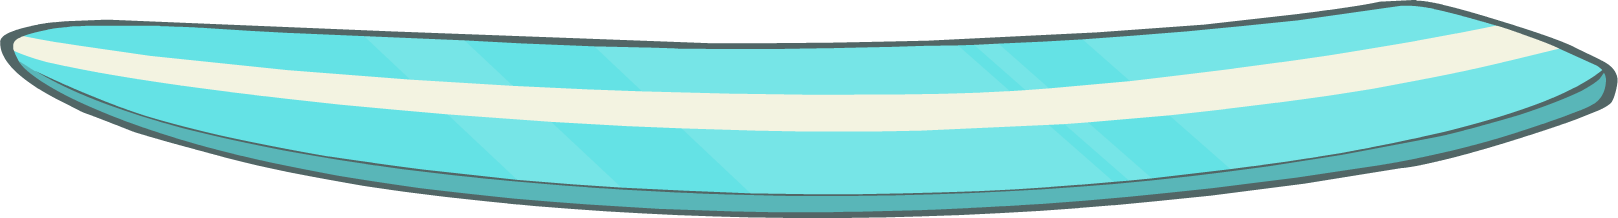 Surfboard PNG - 58026